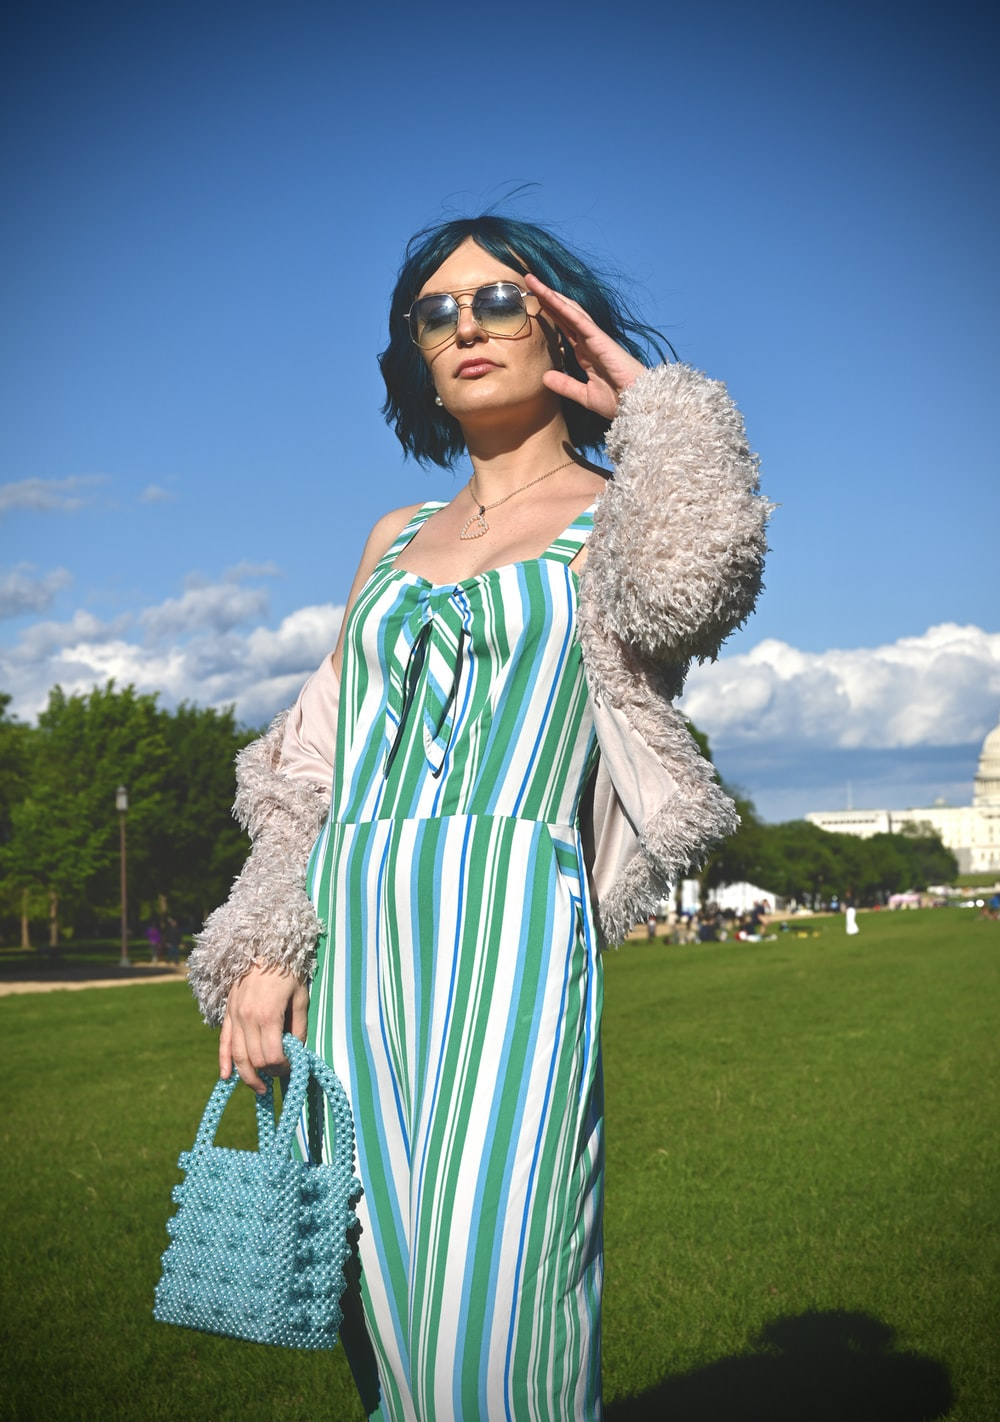 woman in white and green dress wearing black sunglasses standing on green grass field during daytime